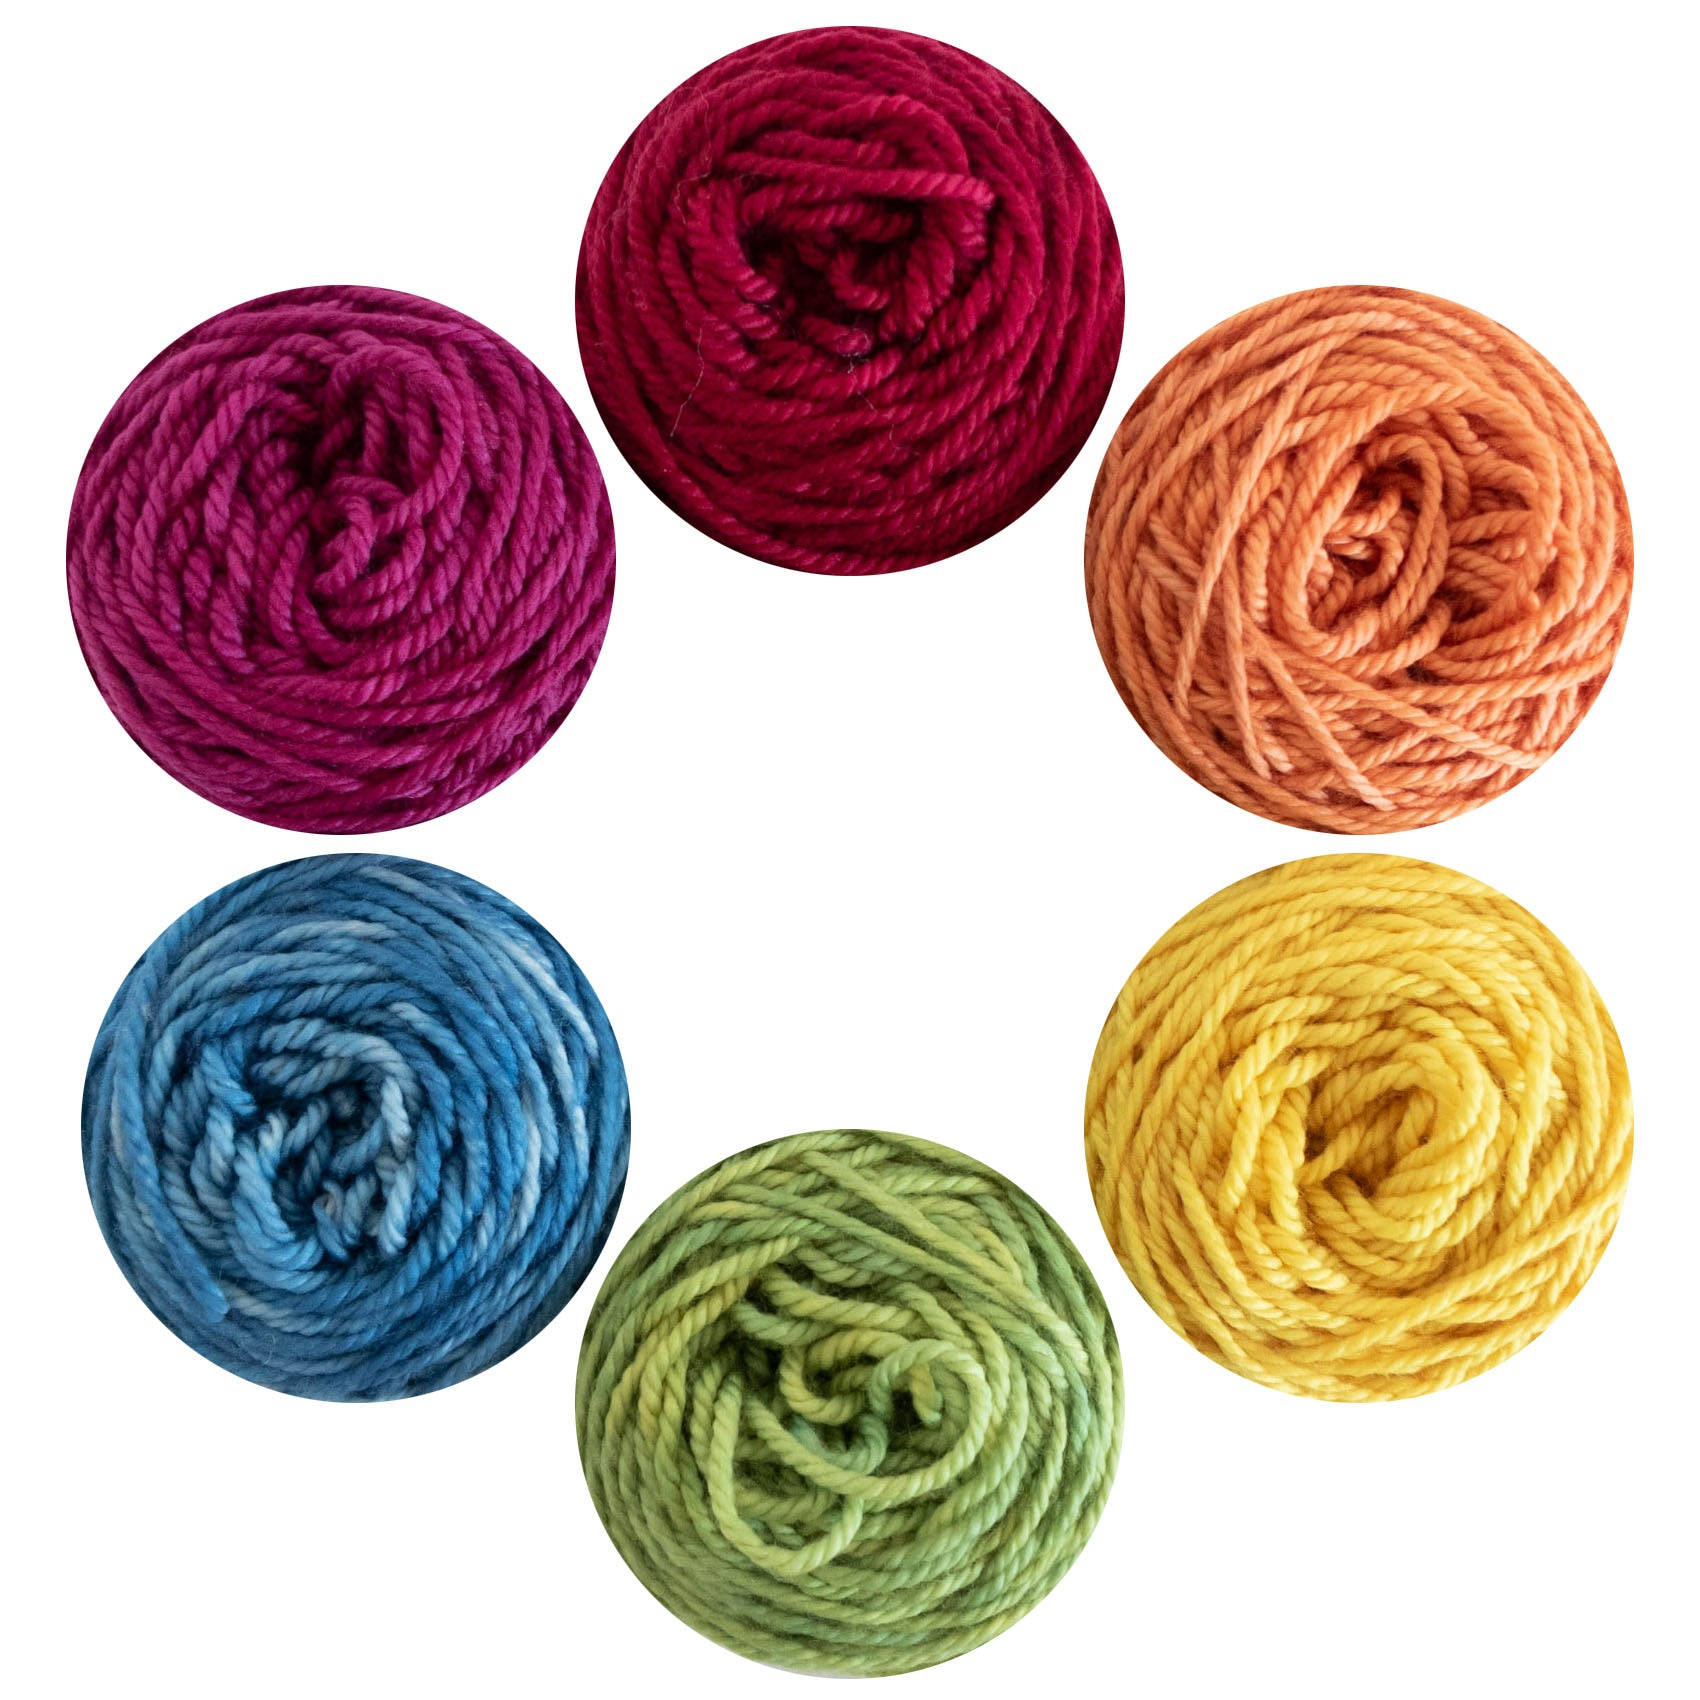 Six cakes of Naturally dyed hand dyed yarn in Canada in the colours of the rainbow